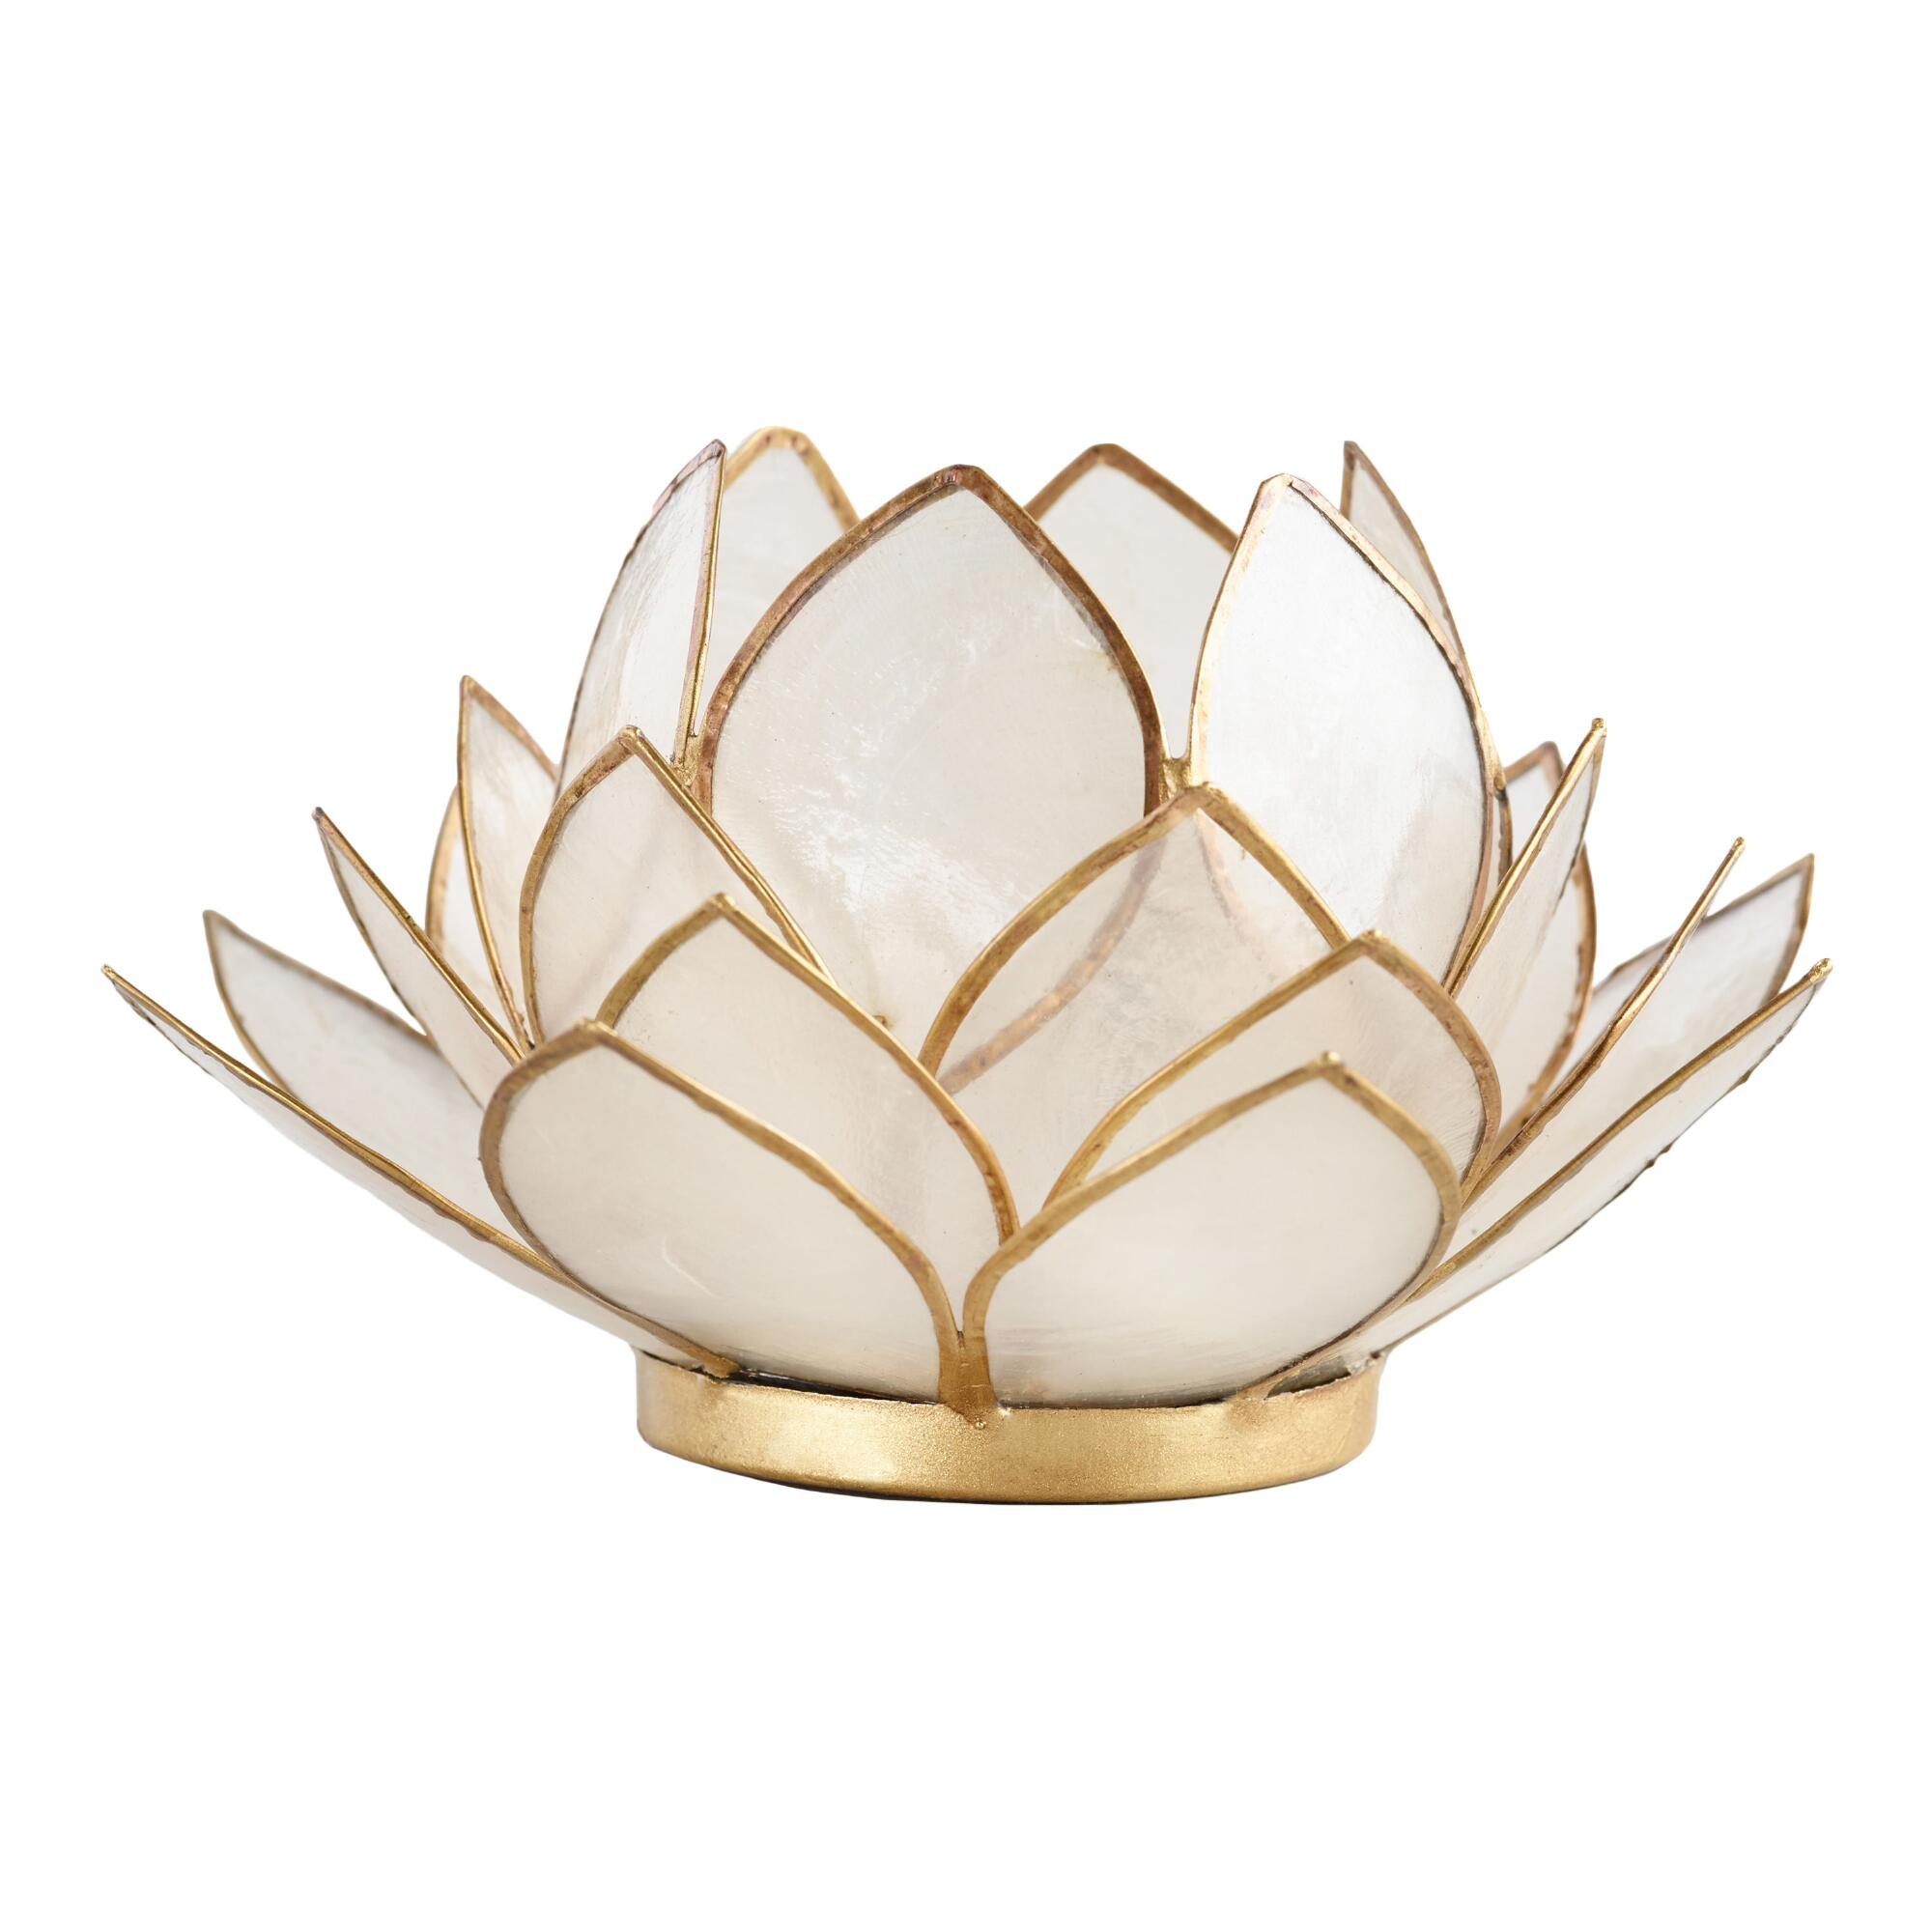 White Lotus Capiz Tealight Candleholder - Capiz Shell by World Market